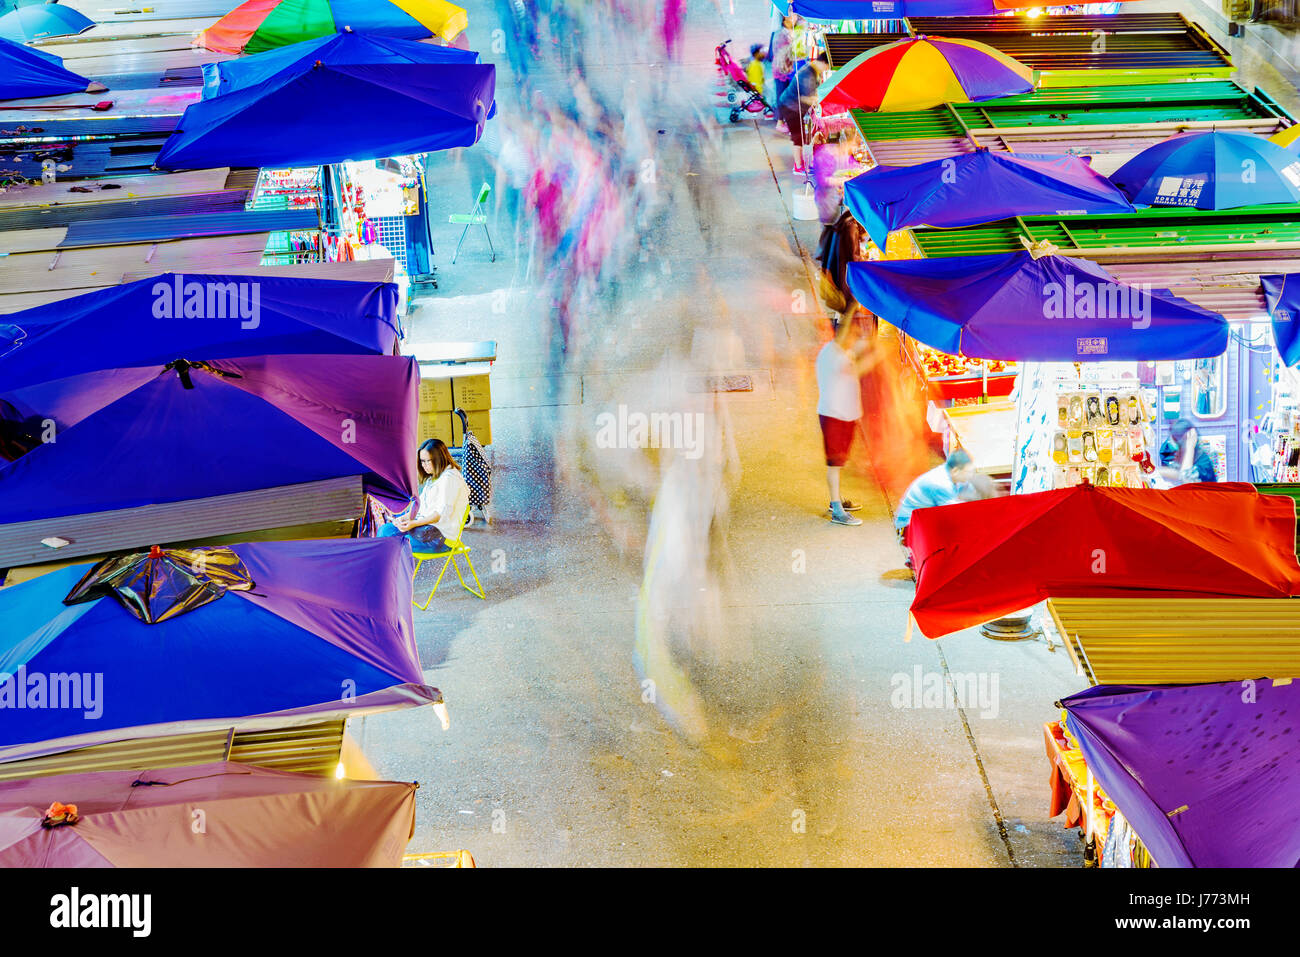 HONG KONG, CHINA - APRIL 24: This is an aerial view of Fa Yuen street market a popular local market in in the Mong - Stock Image